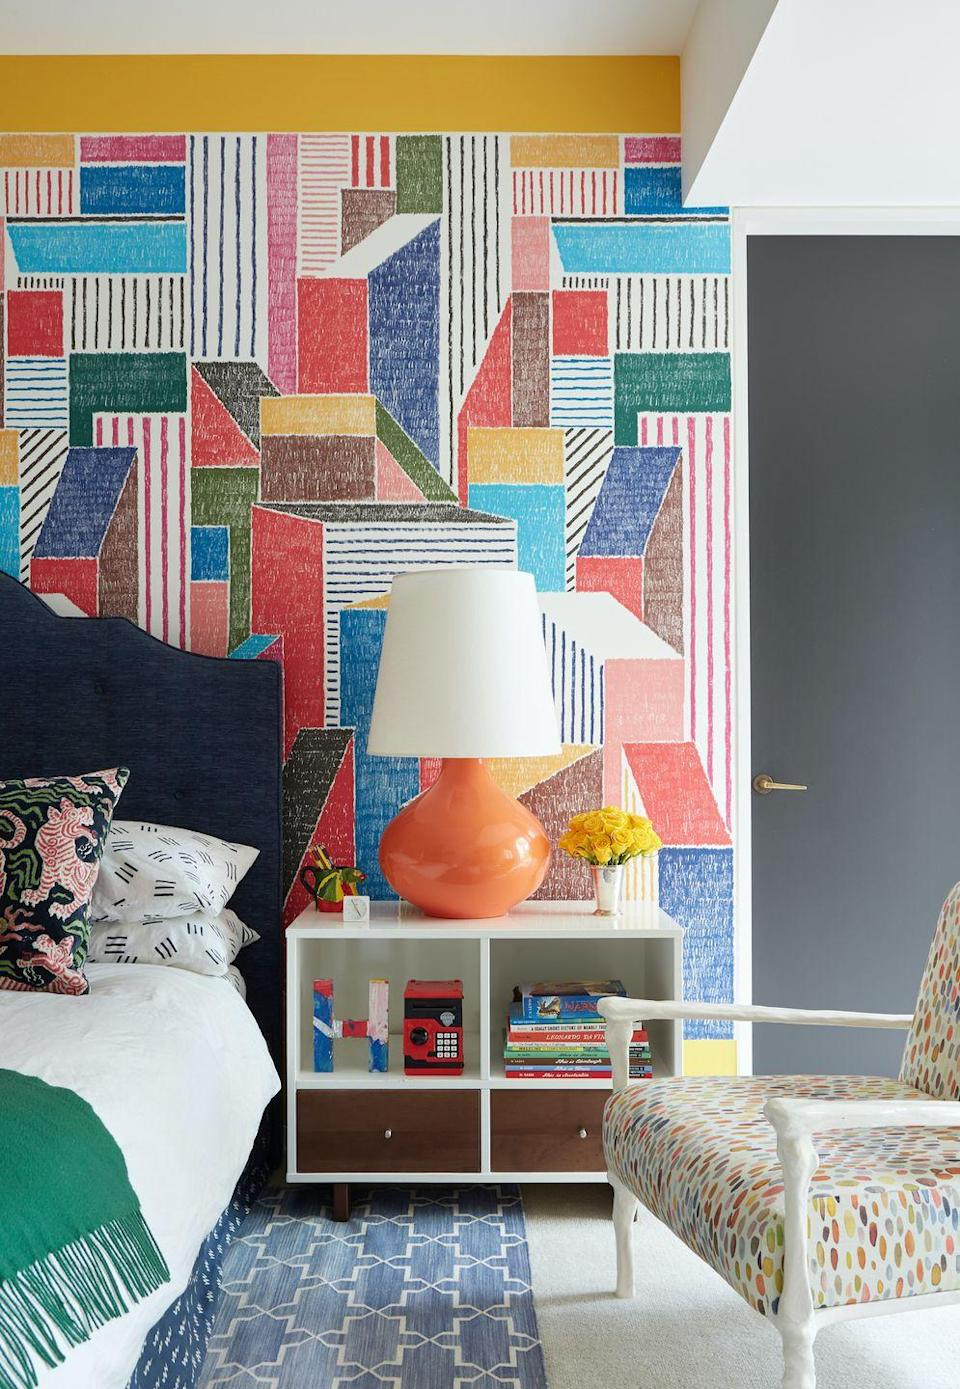 """<p>Nick Olsen brought a Hollywood spirit to this Cincinnati home with bold pops of color. """"I love high style mixed with something ordinary or strange,"""" <a href=""""https://www.elledecor.com/design-decorate/house-interiors/a30678139/nick-olsen-cincinnati-house/"""" rel=""""nofollow noopener"""" target=""""_blank"""" data-ylk=""""slk:he told ELLE Decor"""" class=""""link rapid-noclick-resp"""">he told <em>ELLE Decor</em></a>. """"My style owes heavily to the decorating greats, but I combine elements in a way that feels fresh to me and, hopefully, conveys a sense of humor.""""</p><p><em>Cole and Son Prism Multi Colored Wallpaper, $137 <br></em> <a class=""""link rapid-noclick-resp"""" href=""""https://www.wallpaperstogo.com/p-143815-prism-multi-coloured-wallpaper.aspx?gclid=CjwKCAiArIH_BRB2EiwALfbH1PRGbsmp4-qKWnyyhlqHV2puoV2ZQmeyOzguTkxNf2oT5_5uNE90GRoCo9sQAvD_BwE"""" rel=""""nofollow noopener"""" target=""""_blank"""" data-ylk=""""slk:Shop the Look"""">Shop the Look</a></p>"""